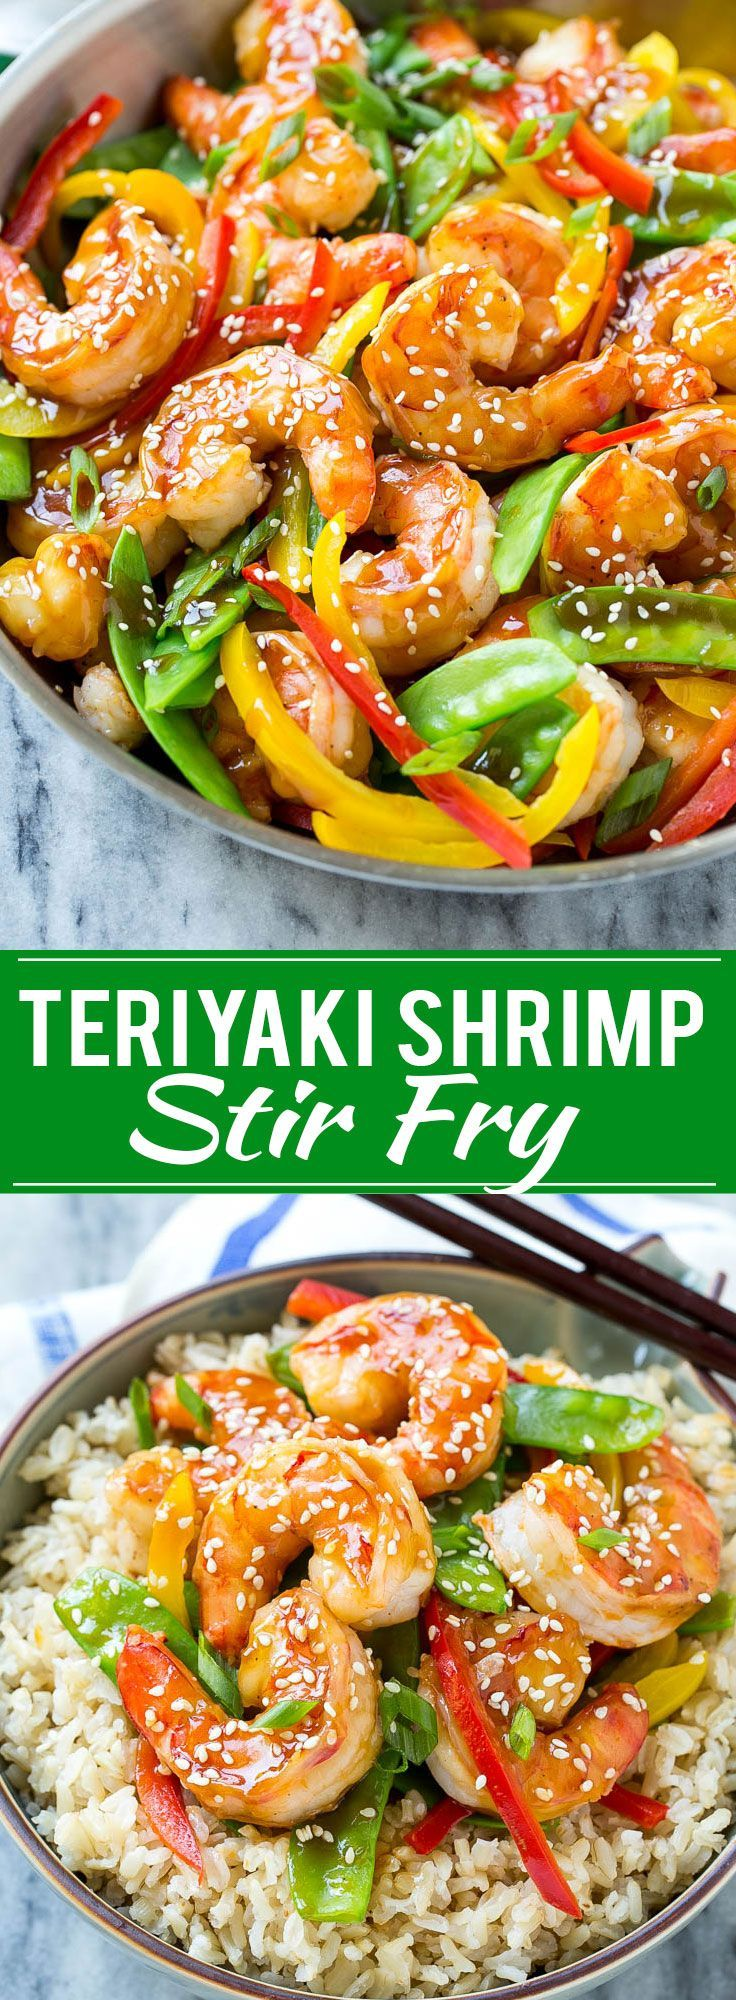 This recipe for teriyaki shrimp stir fry is shrimp and vegetables coated in a…